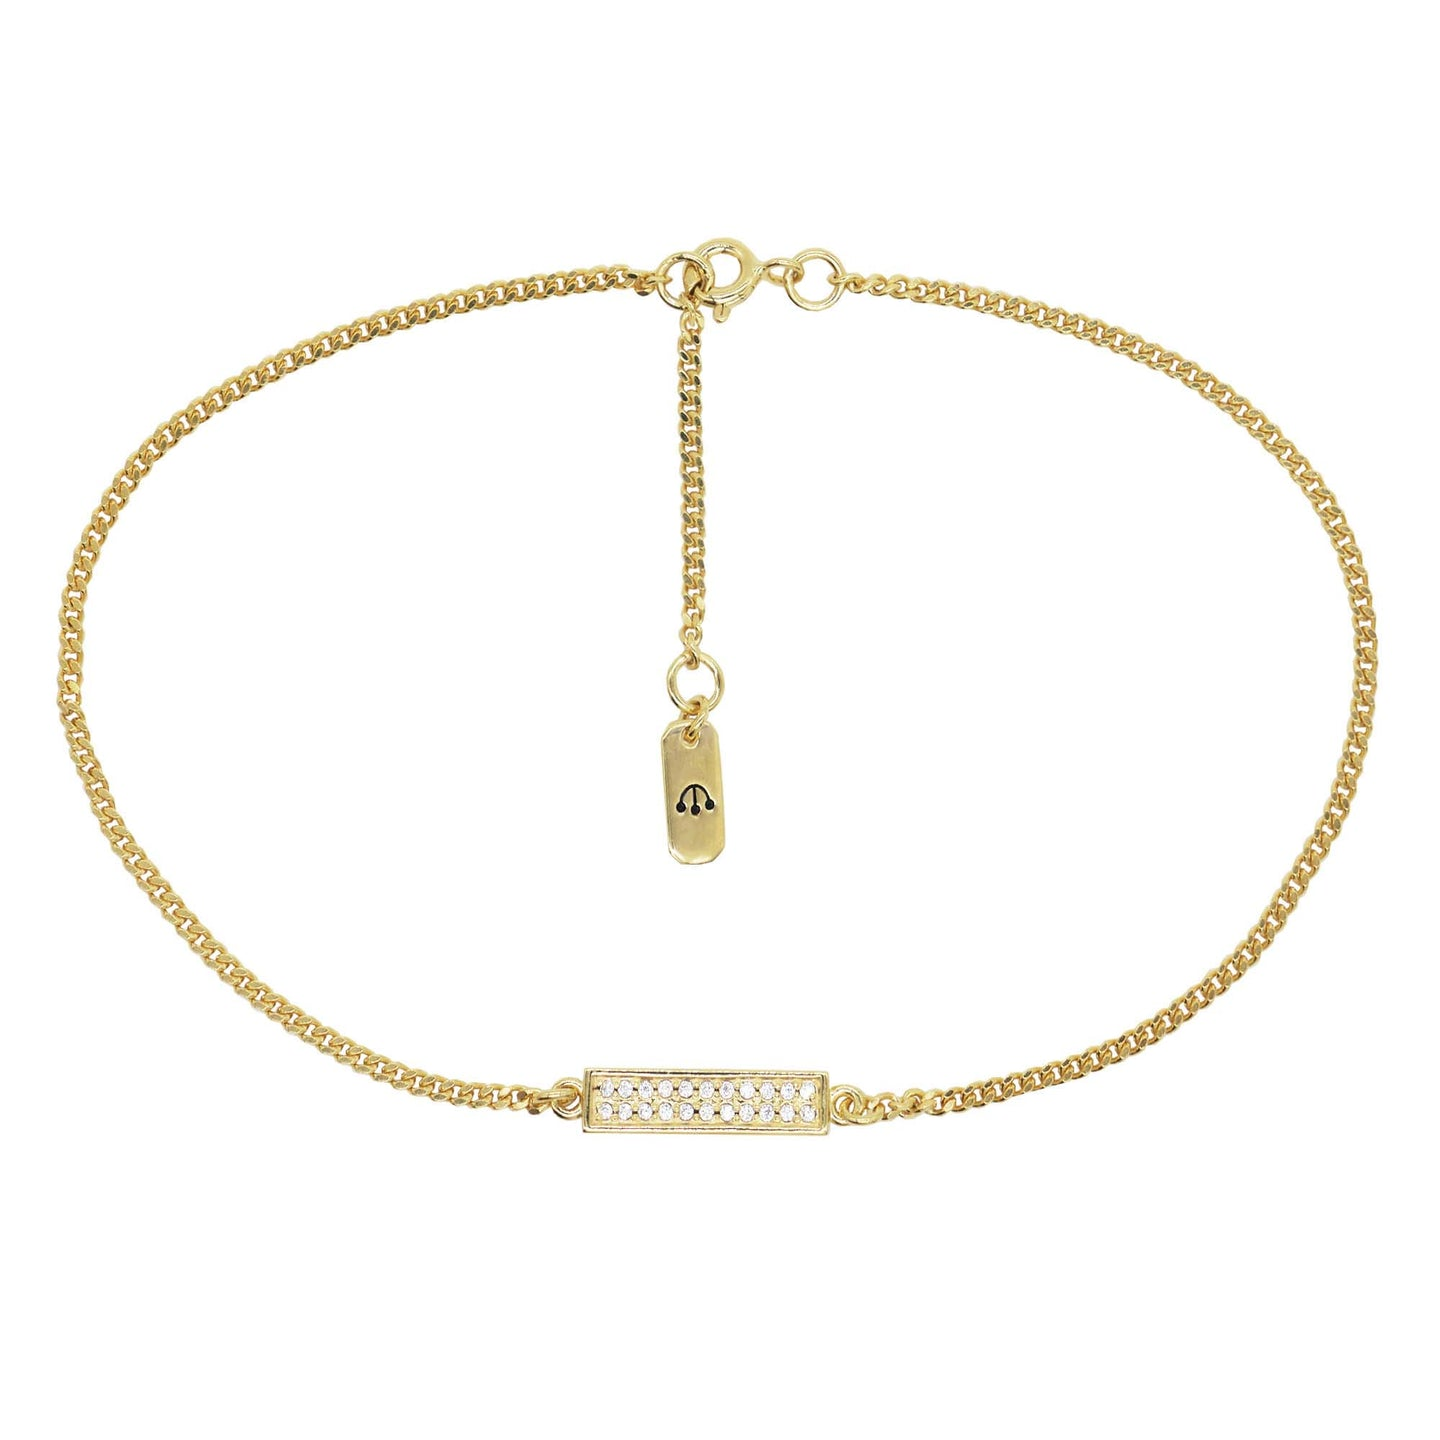 Close up product shot of pawnshop gold plated sterling silver chain anklet with rectangle pave crystal bar. Chain has an extender and on the end is a tag with pawnshop 3 ball logo engraved. Product shot on a white background.